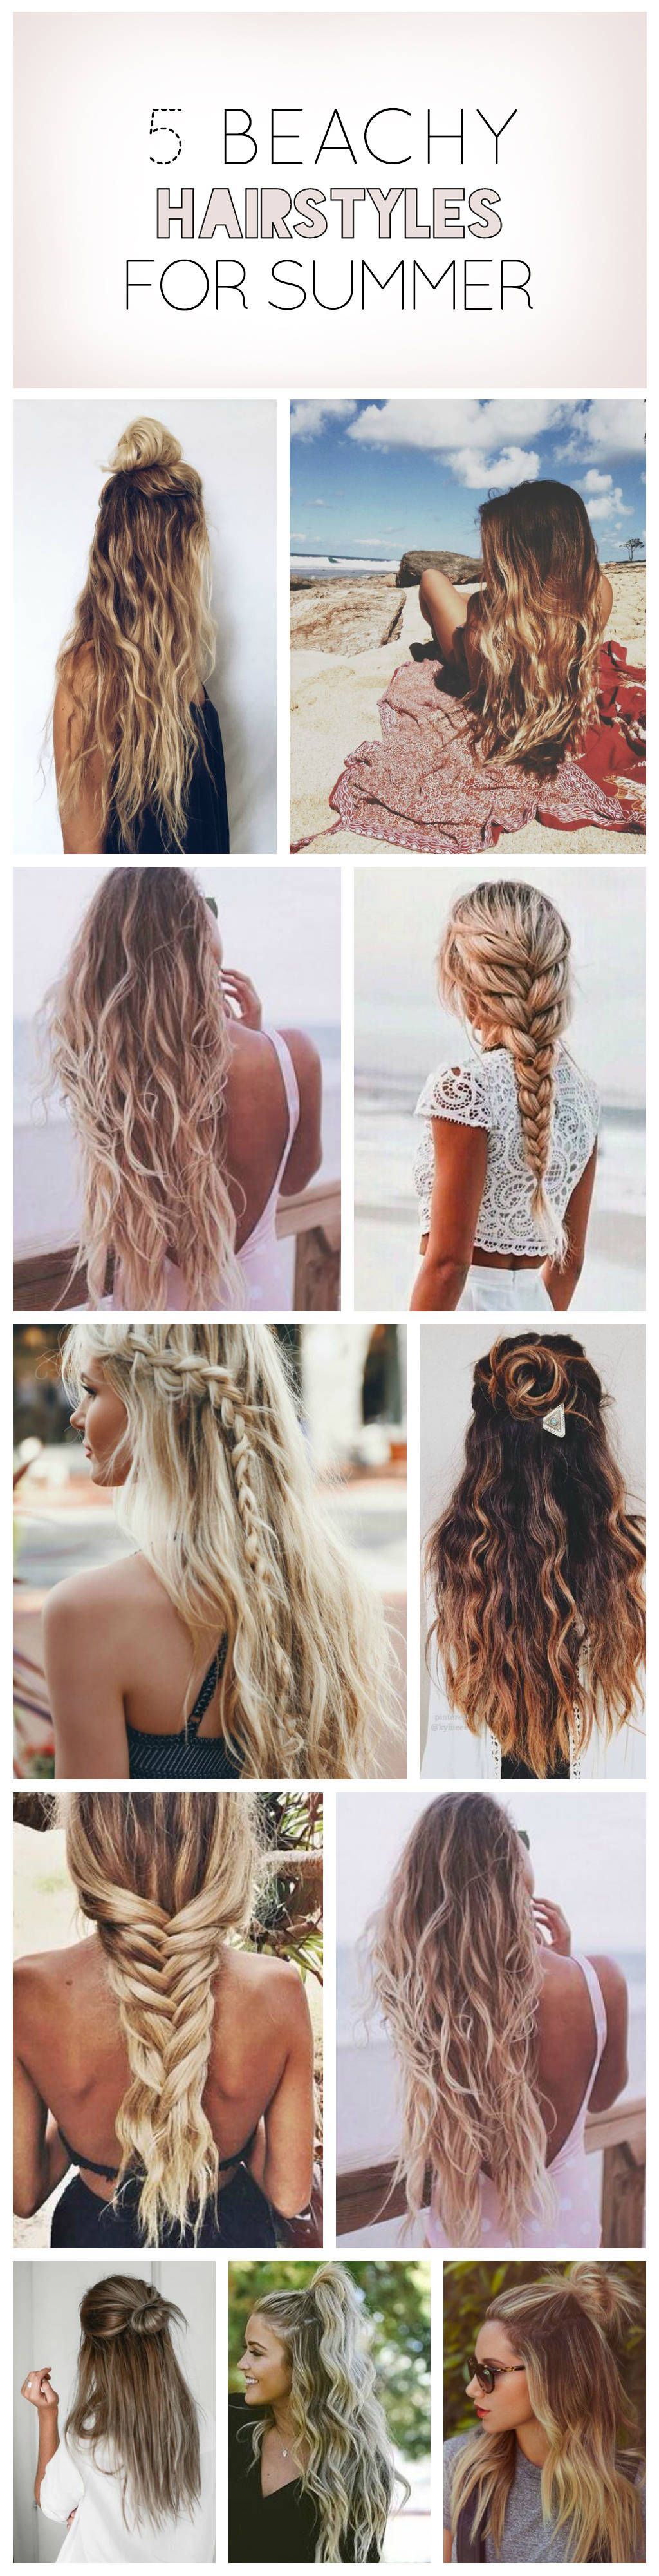 beachy hairstyles for summer summer hair style and makeup